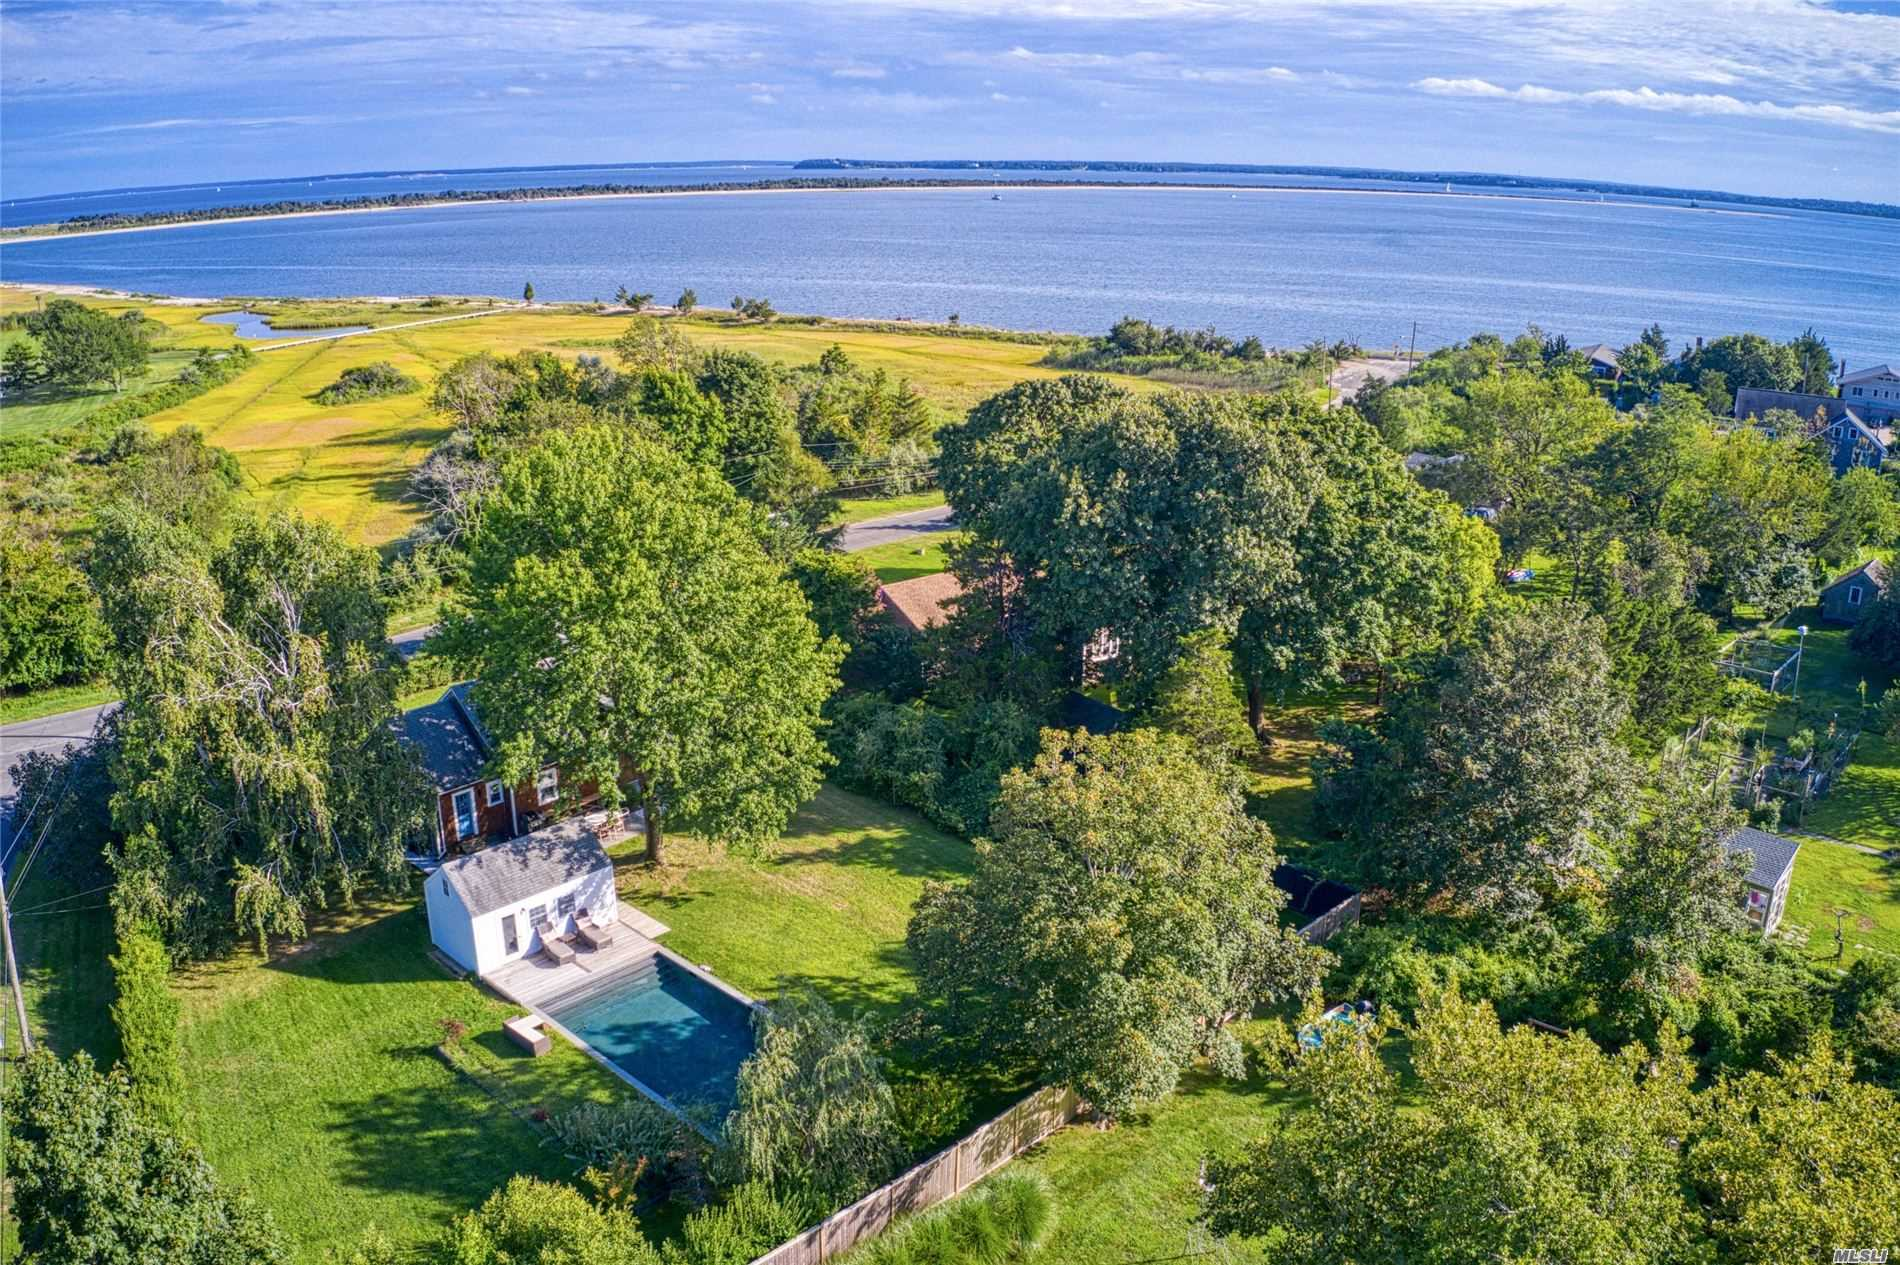 Orient Village- Newly Renovated Cedar Shingled 3-4 Bedrooms, 2 New Baths , Fireplace, Central Ac, On 1/2 Acre With Pool House, New Gunite Pool And Fully Fenced In Yard Located In Coveted Orient Village Only Steps To 2500 Feet Of Orient Harbor Beach.